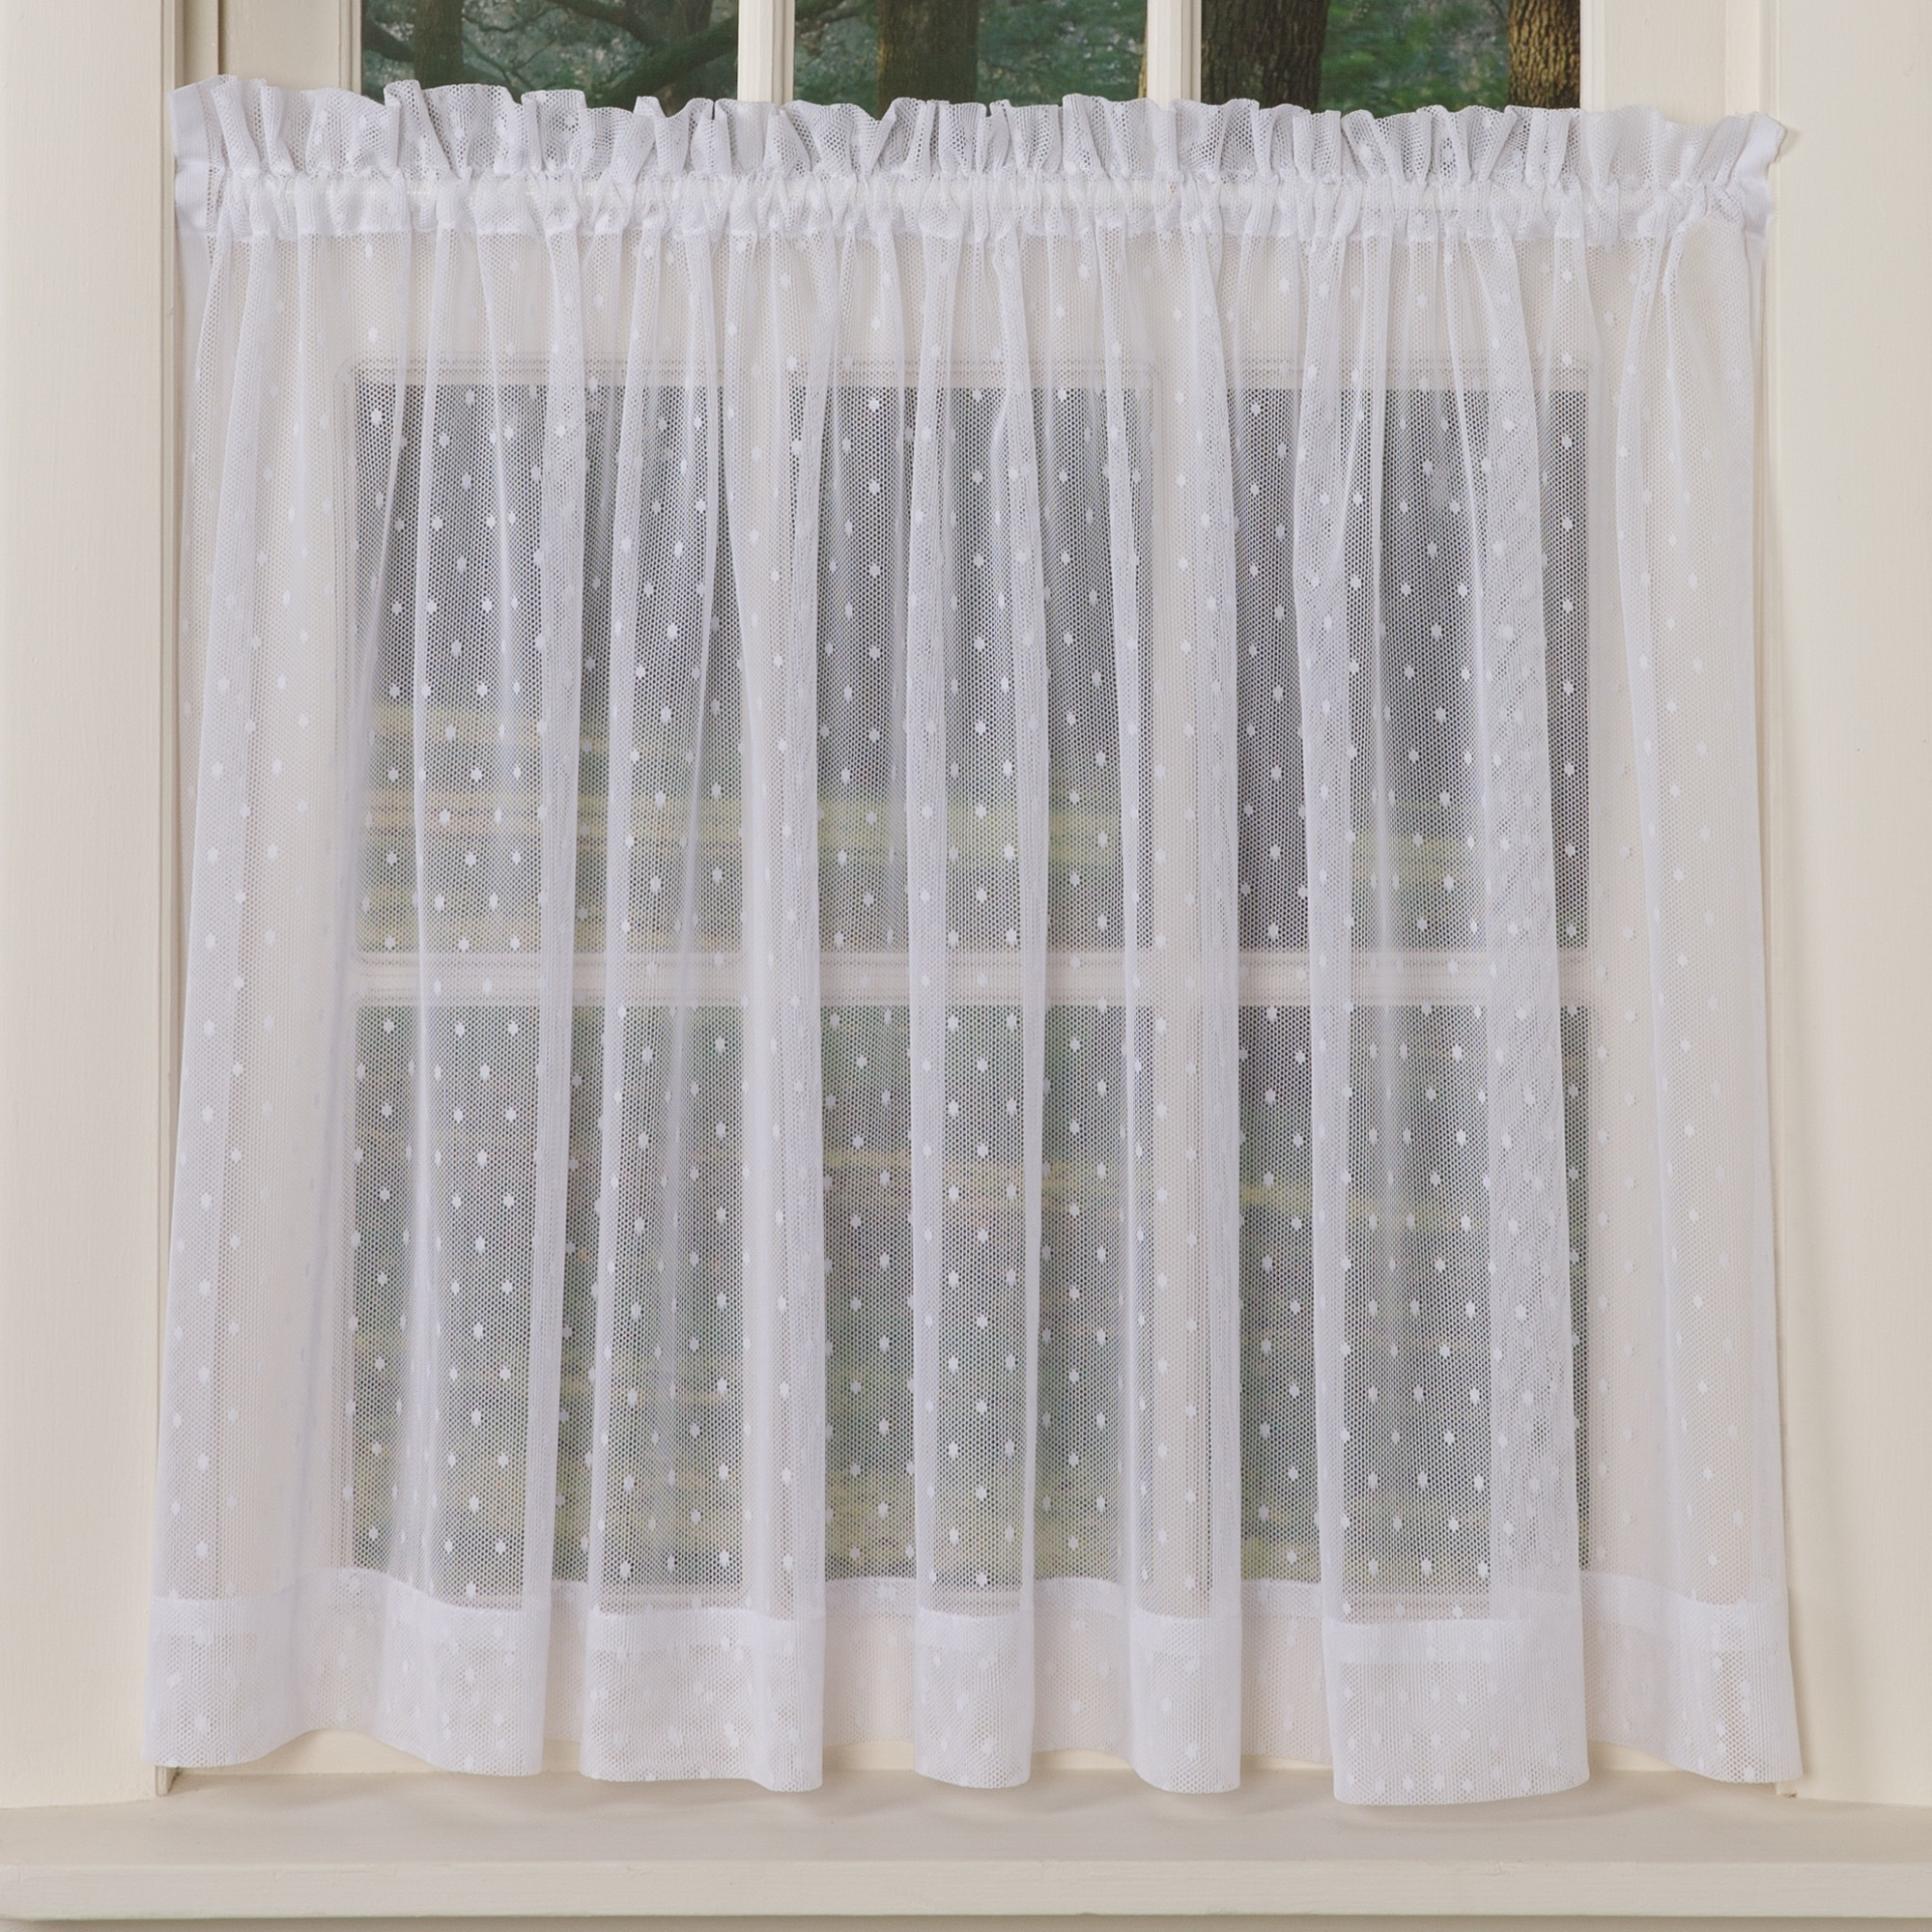 Dotted Sheer Curtains Sturbridge Yankee Workshop Intended For Curtain Sheers (View 13 of 25)